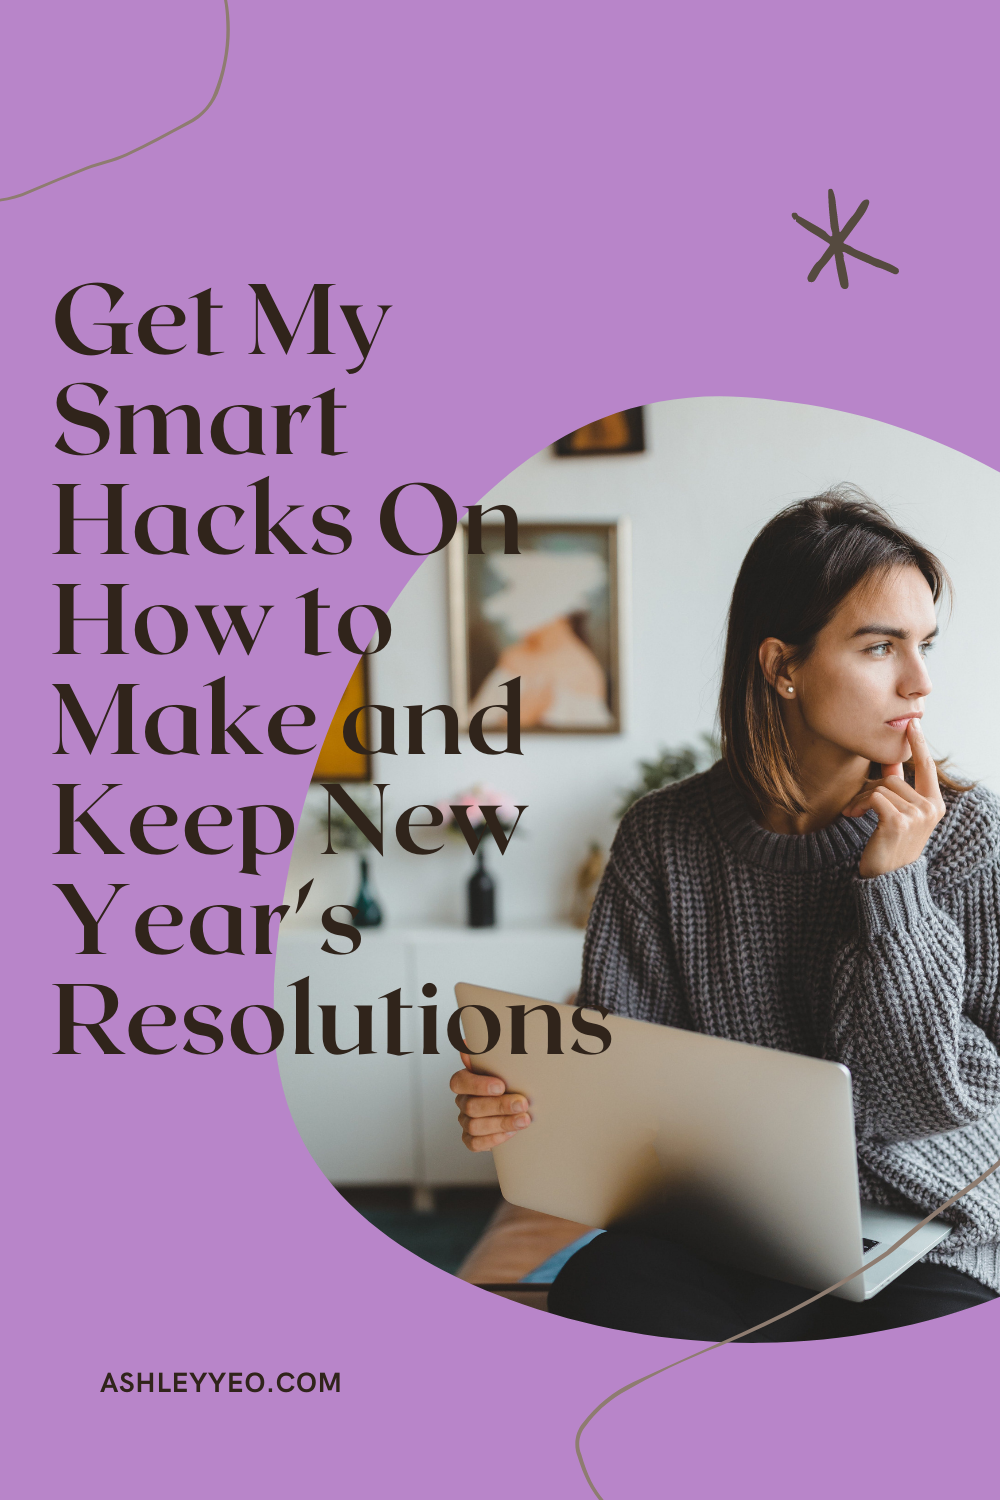 Get My Smart Hacks On How to Make and Keep New Year's Resolutions